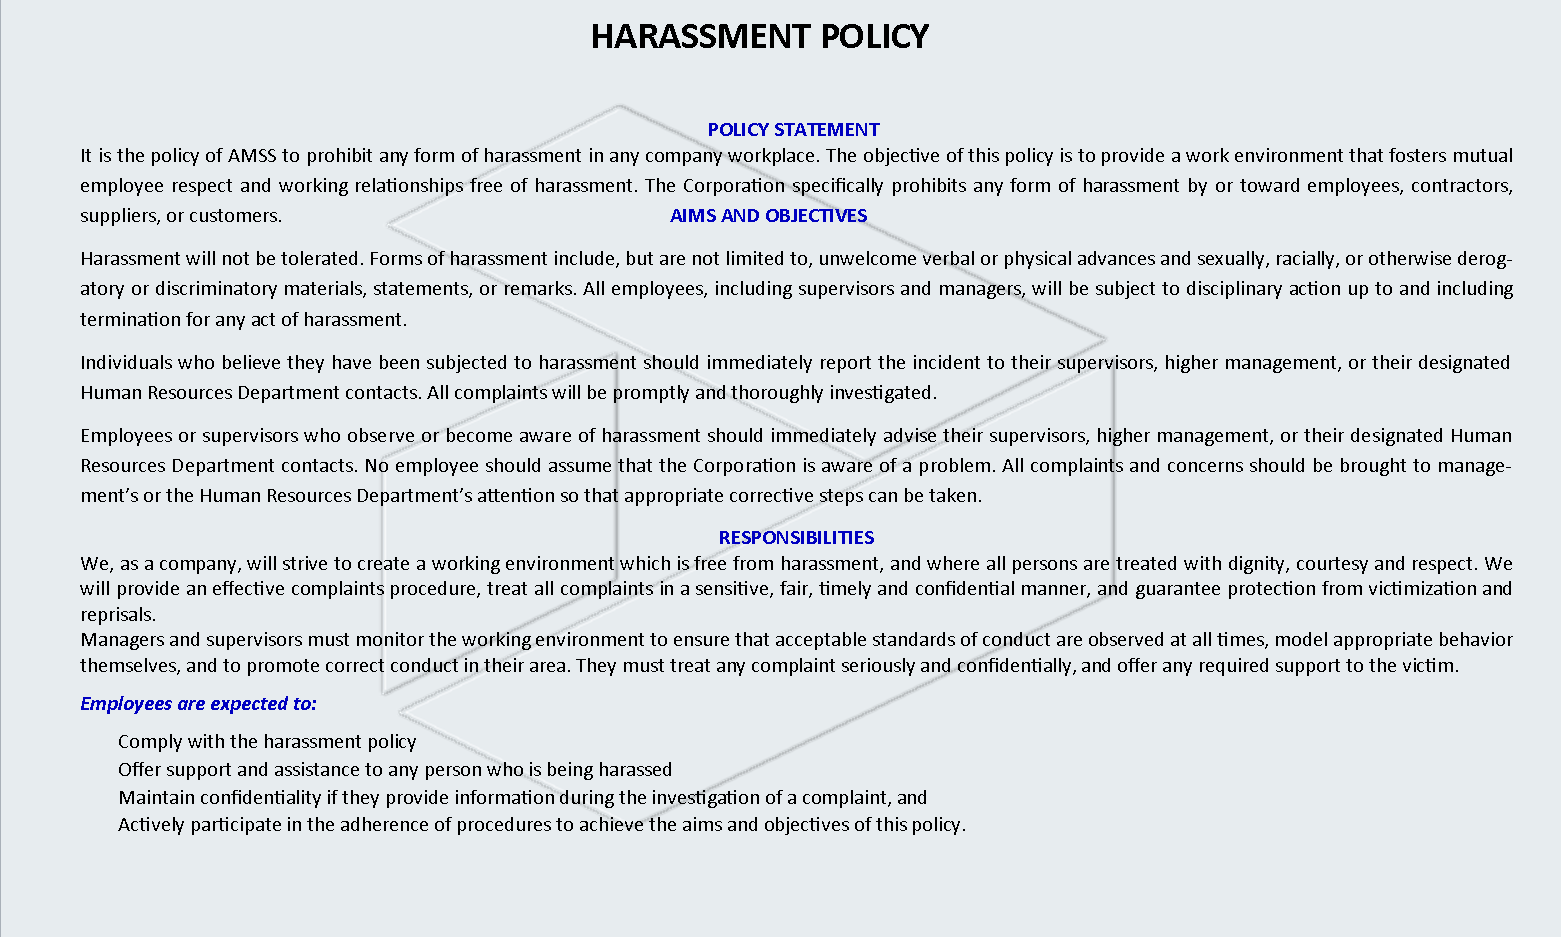 HARASSEMENT POLICY